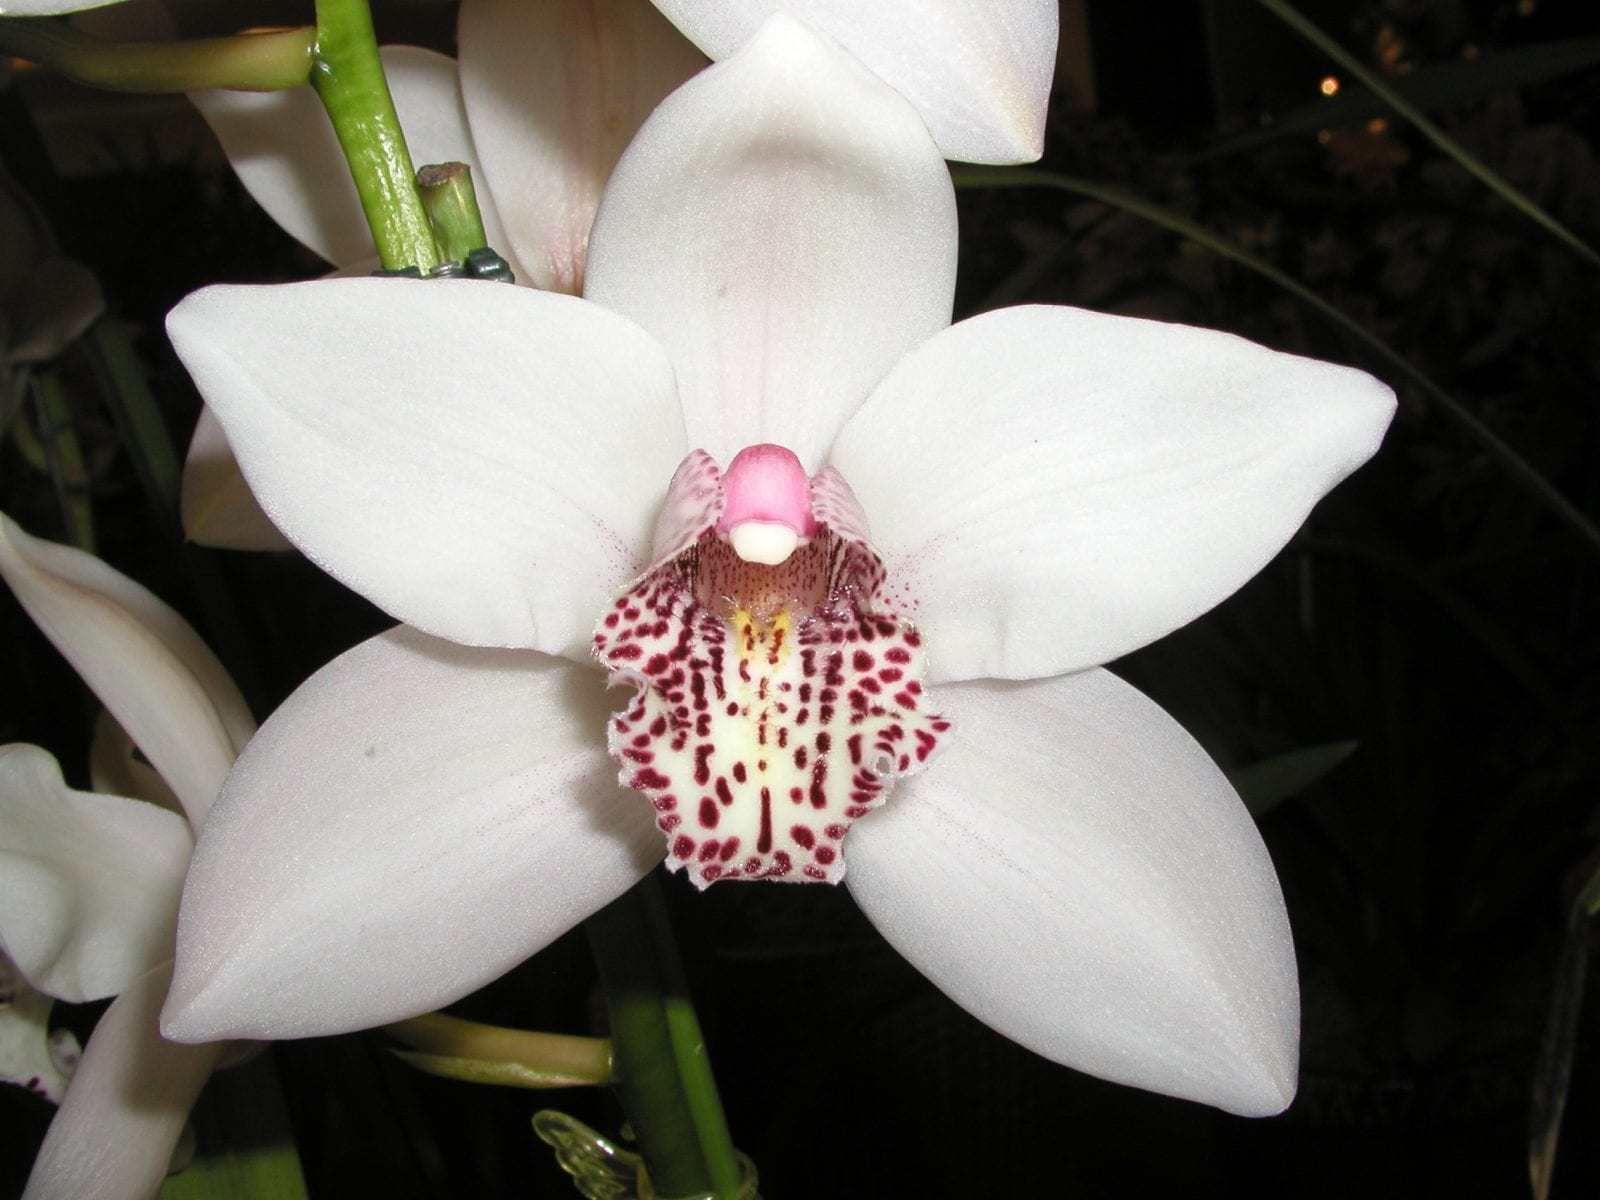 Free Cymbidium Orchid Repotting Demonstration How Orchids Rebloom